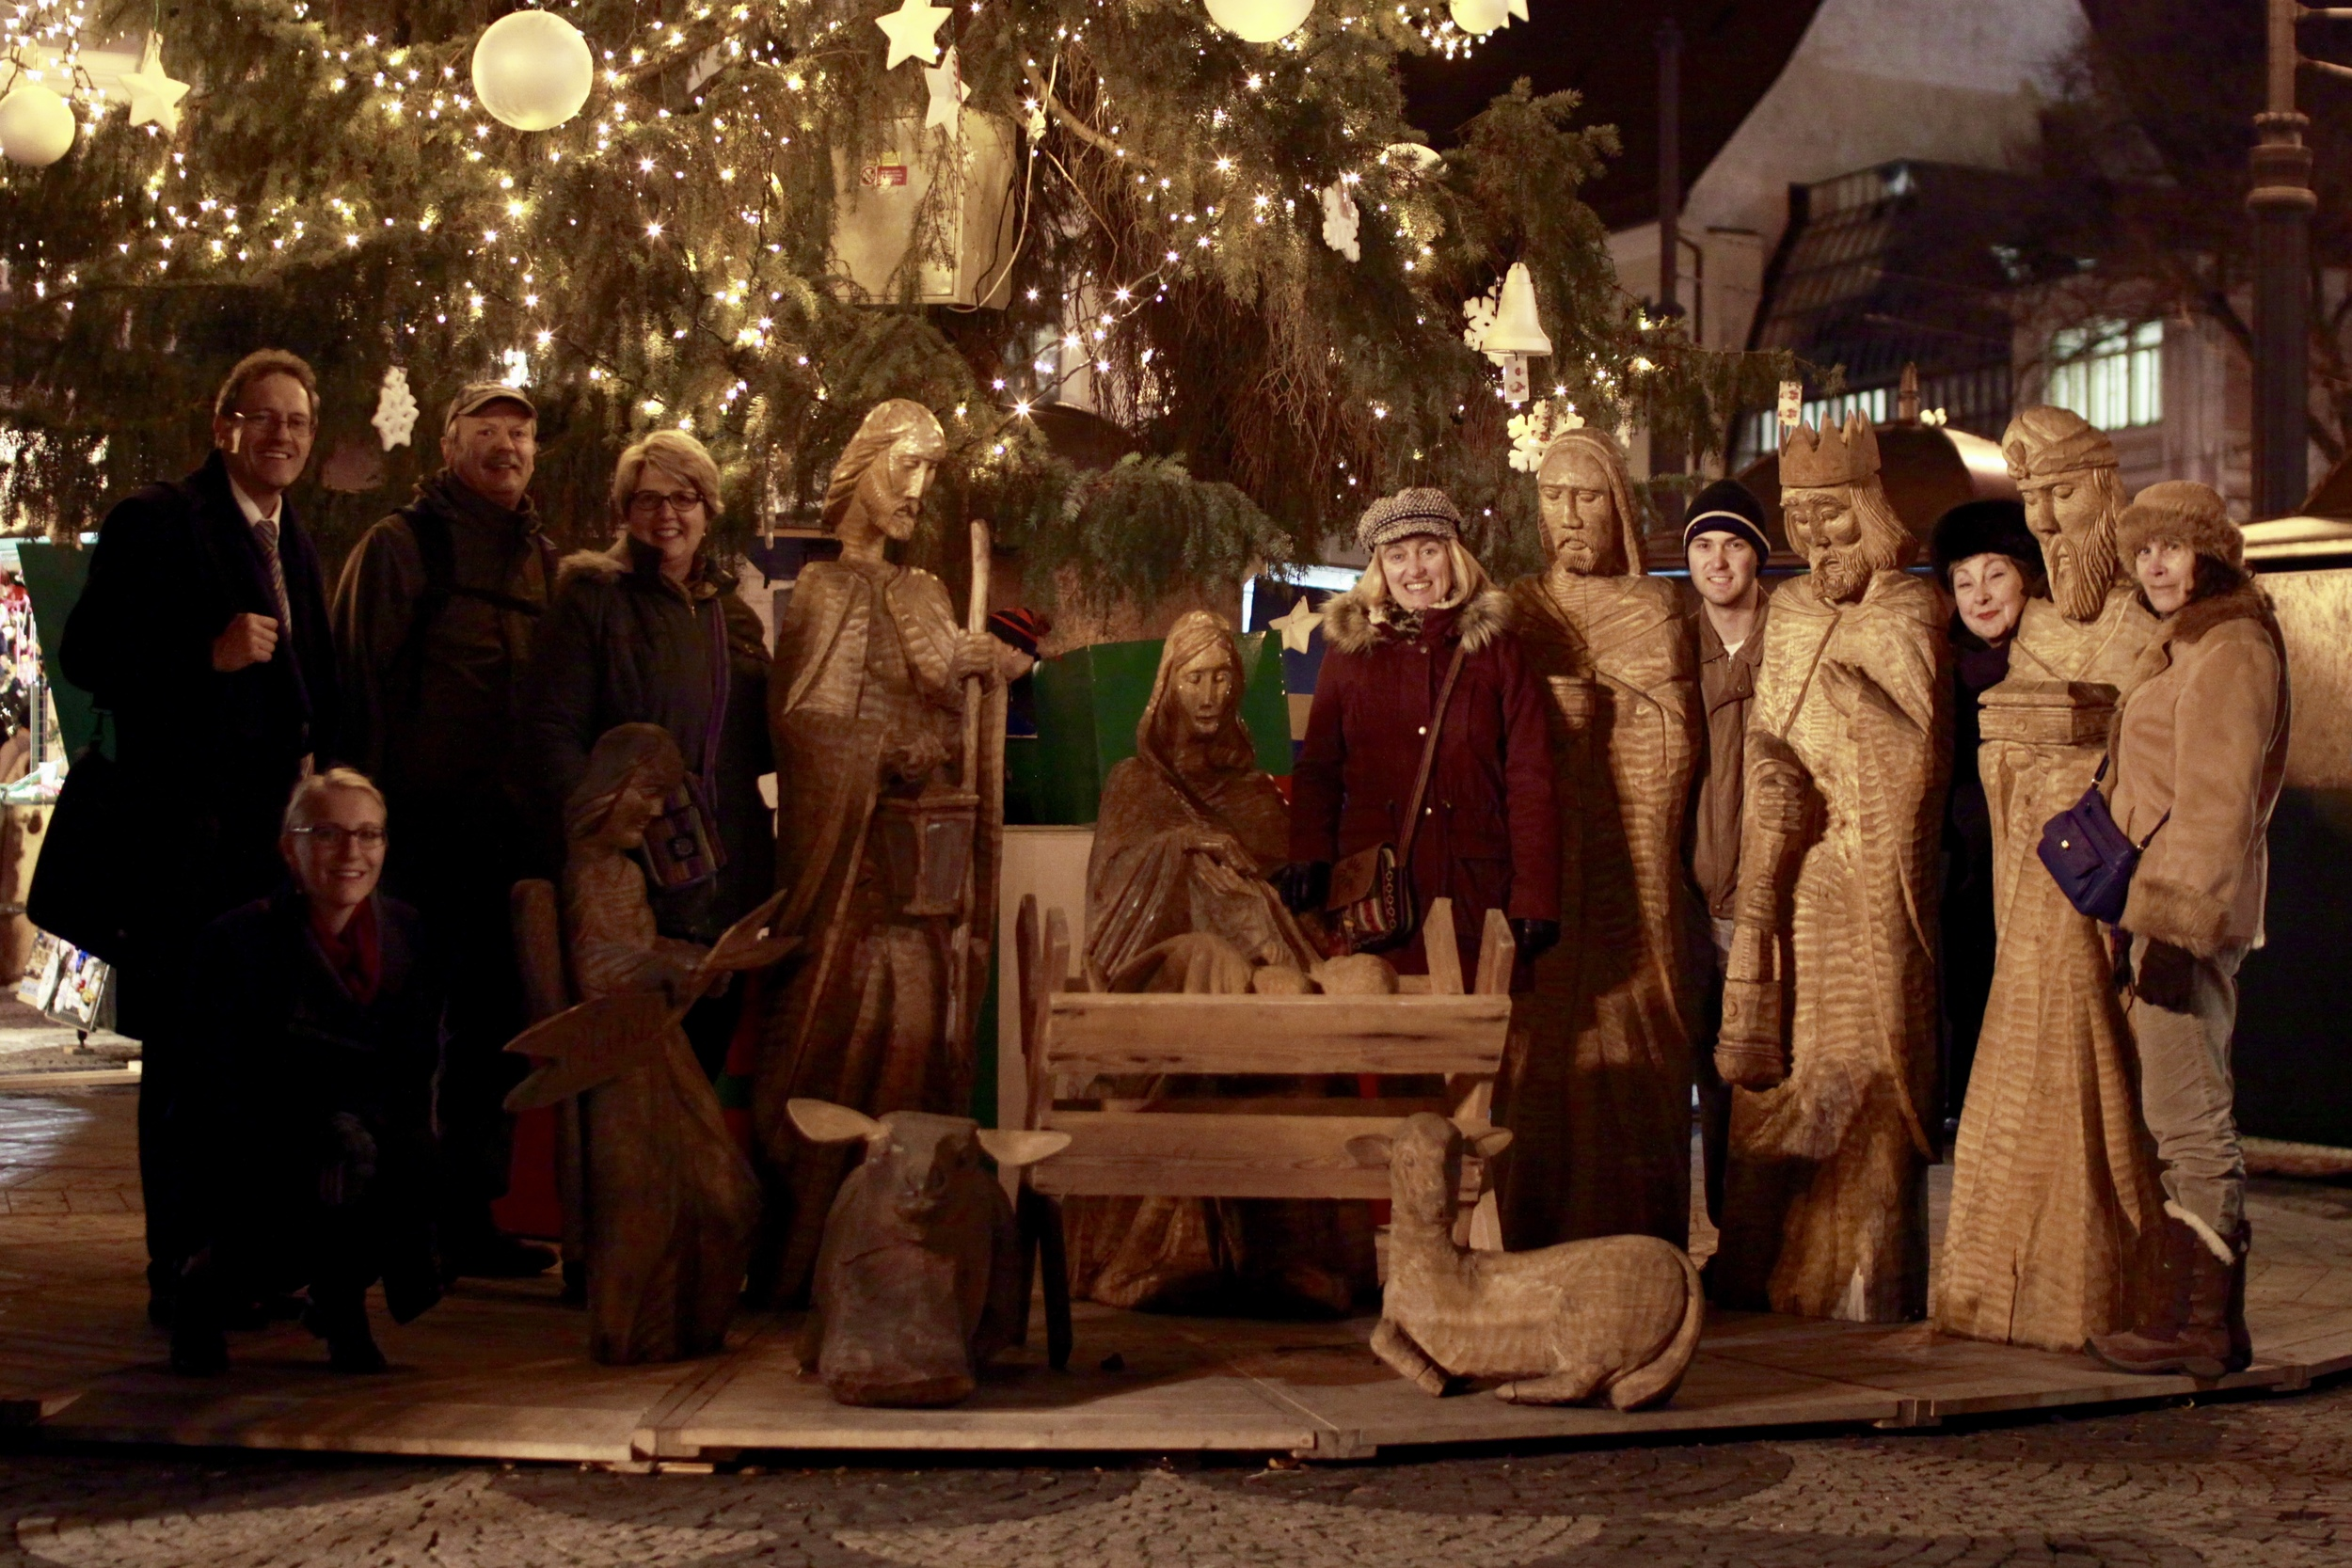 We gathered at the Christmas Markets for the 2nd week of Advent.